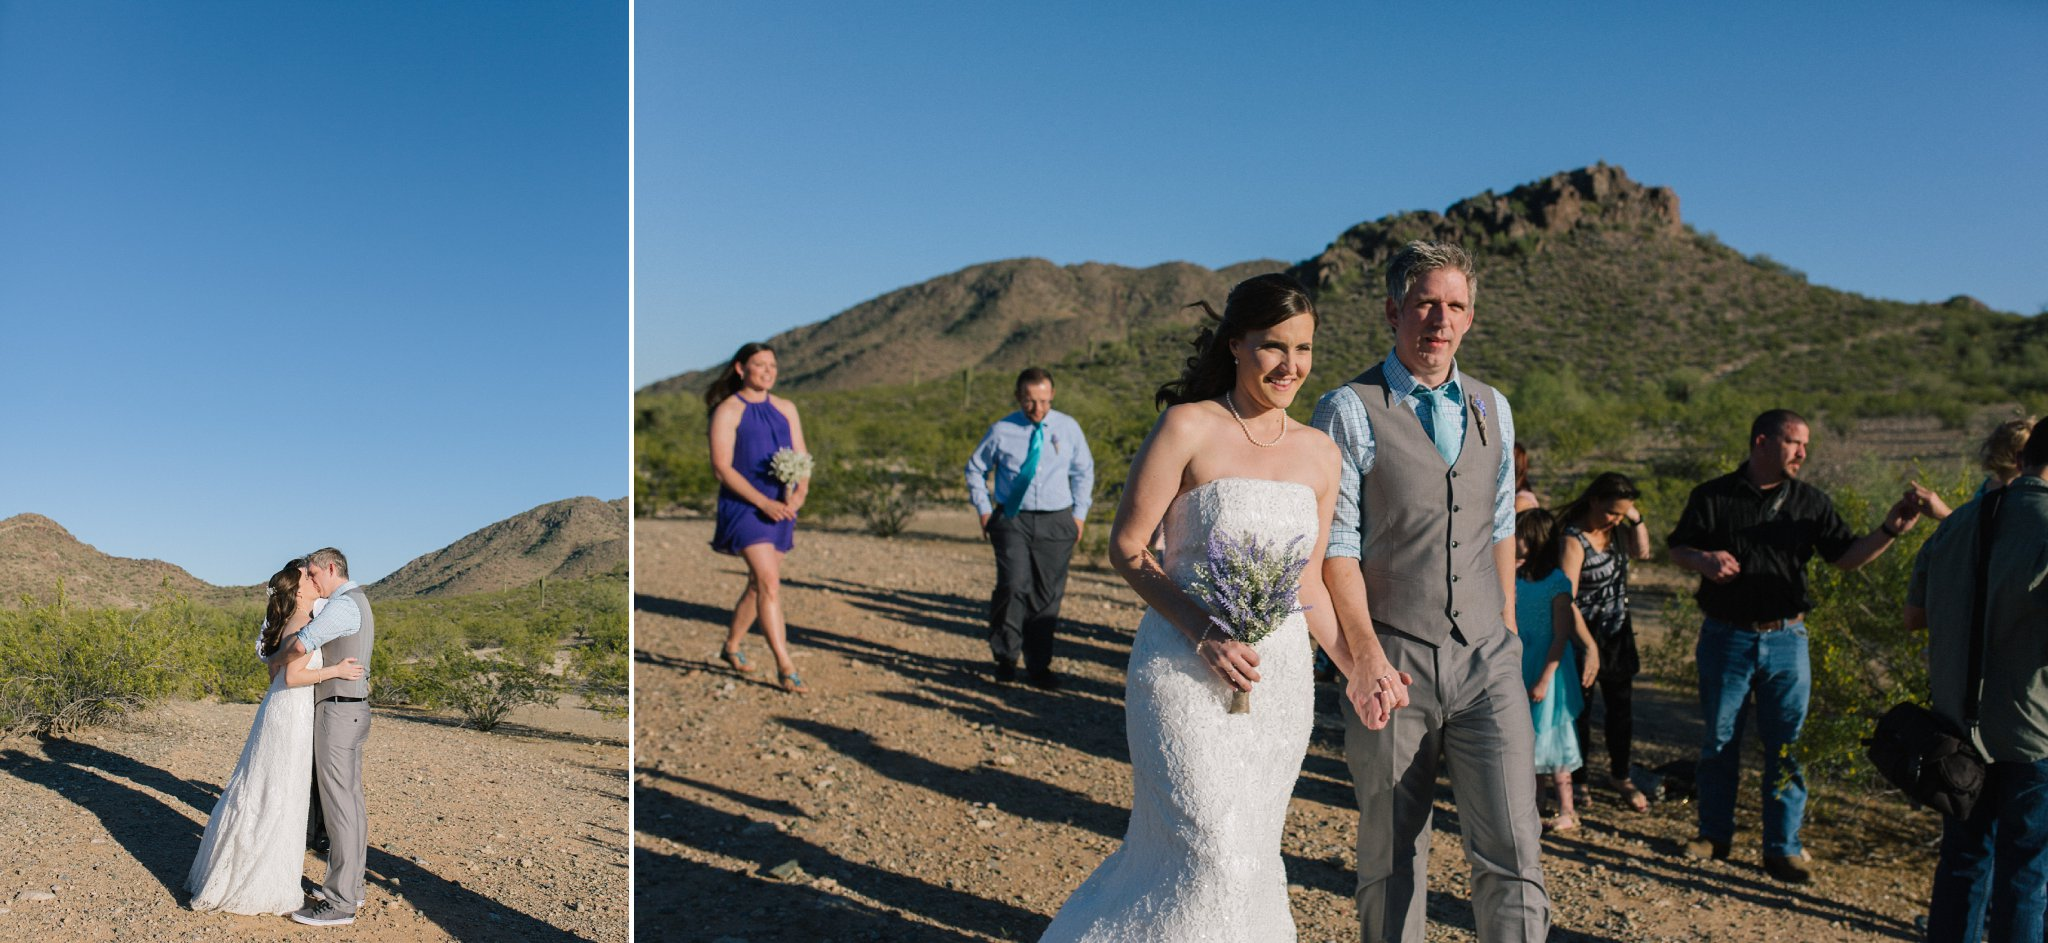 Phoenix mountains small wedding ceremony